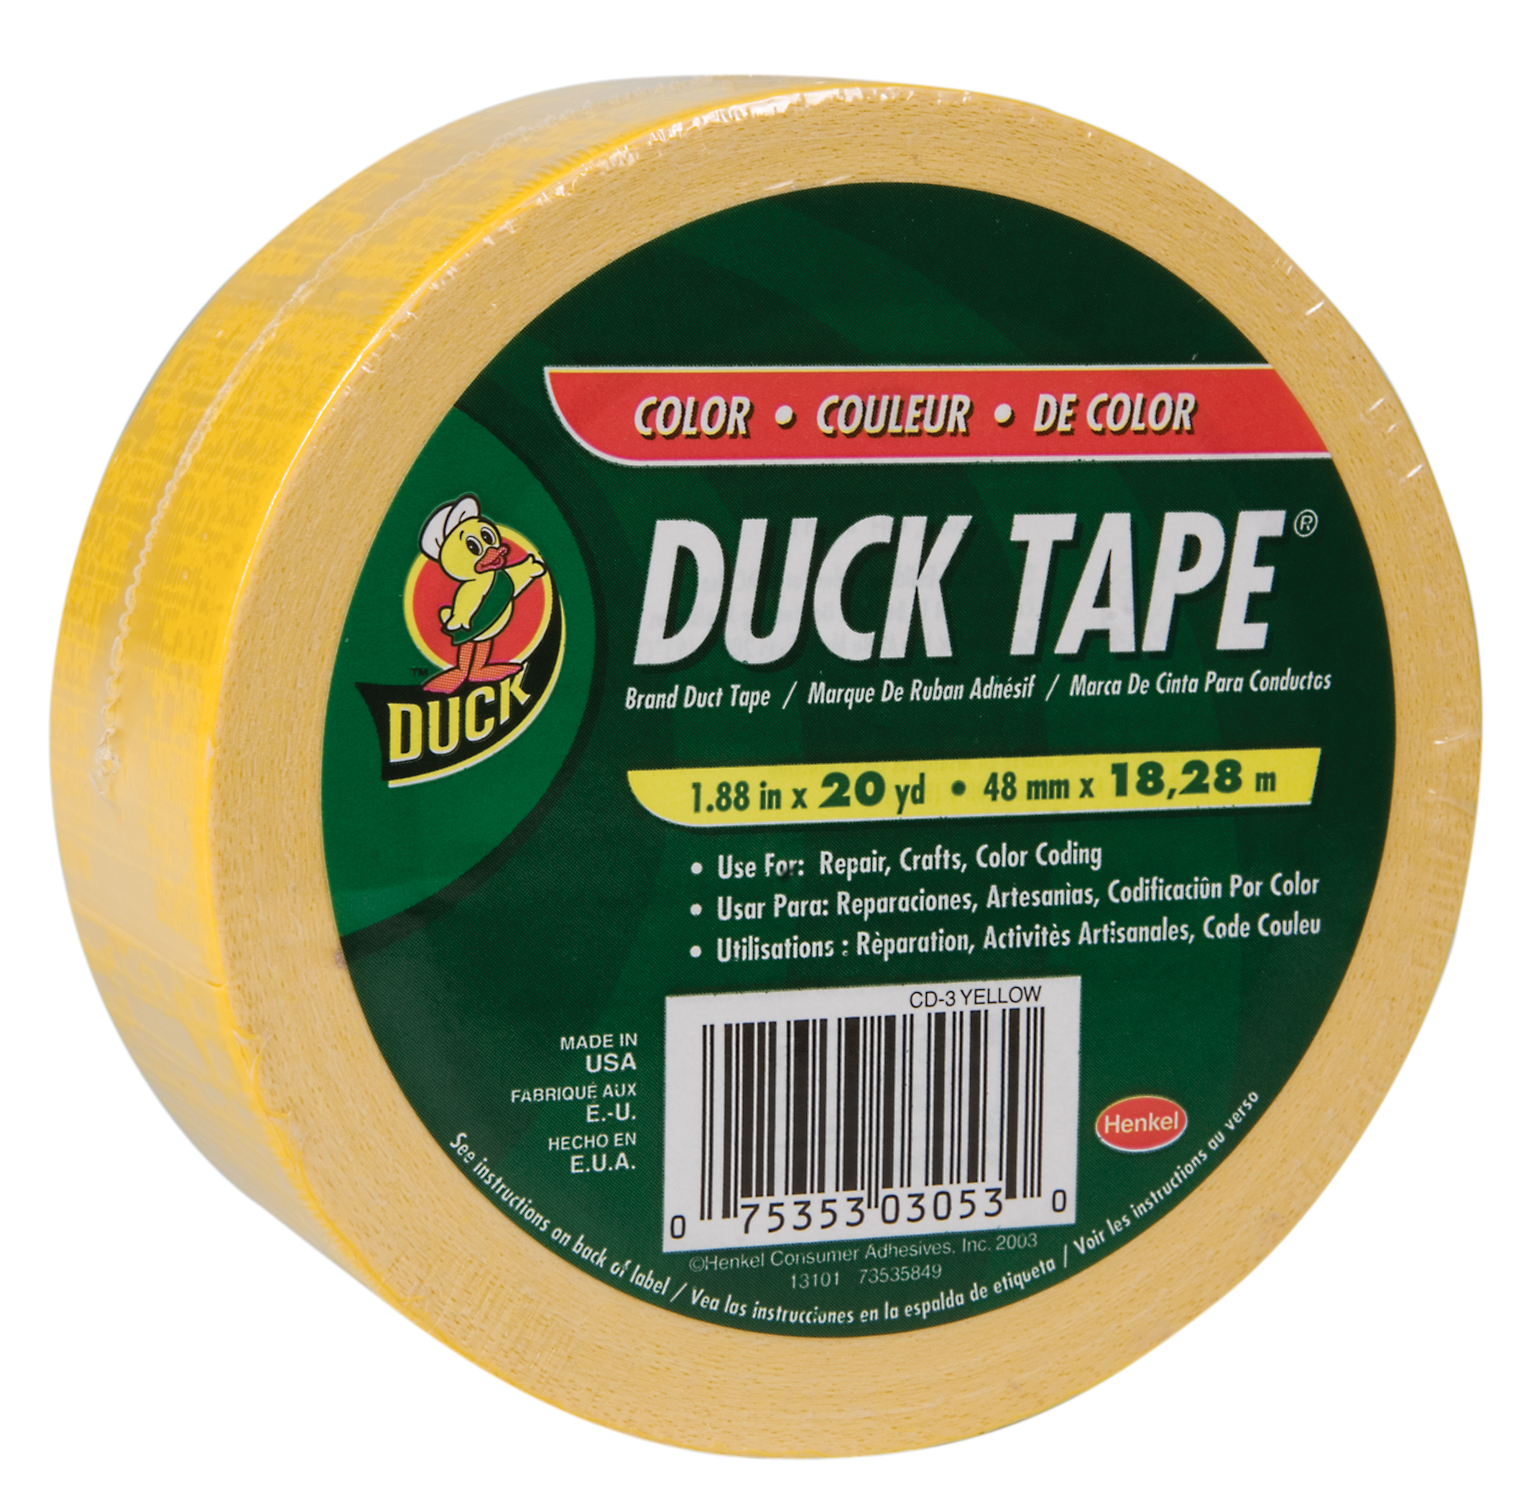 Color Duck Tape Brand Duct Tape - Yellow, 1.88 in. x 20 yd.